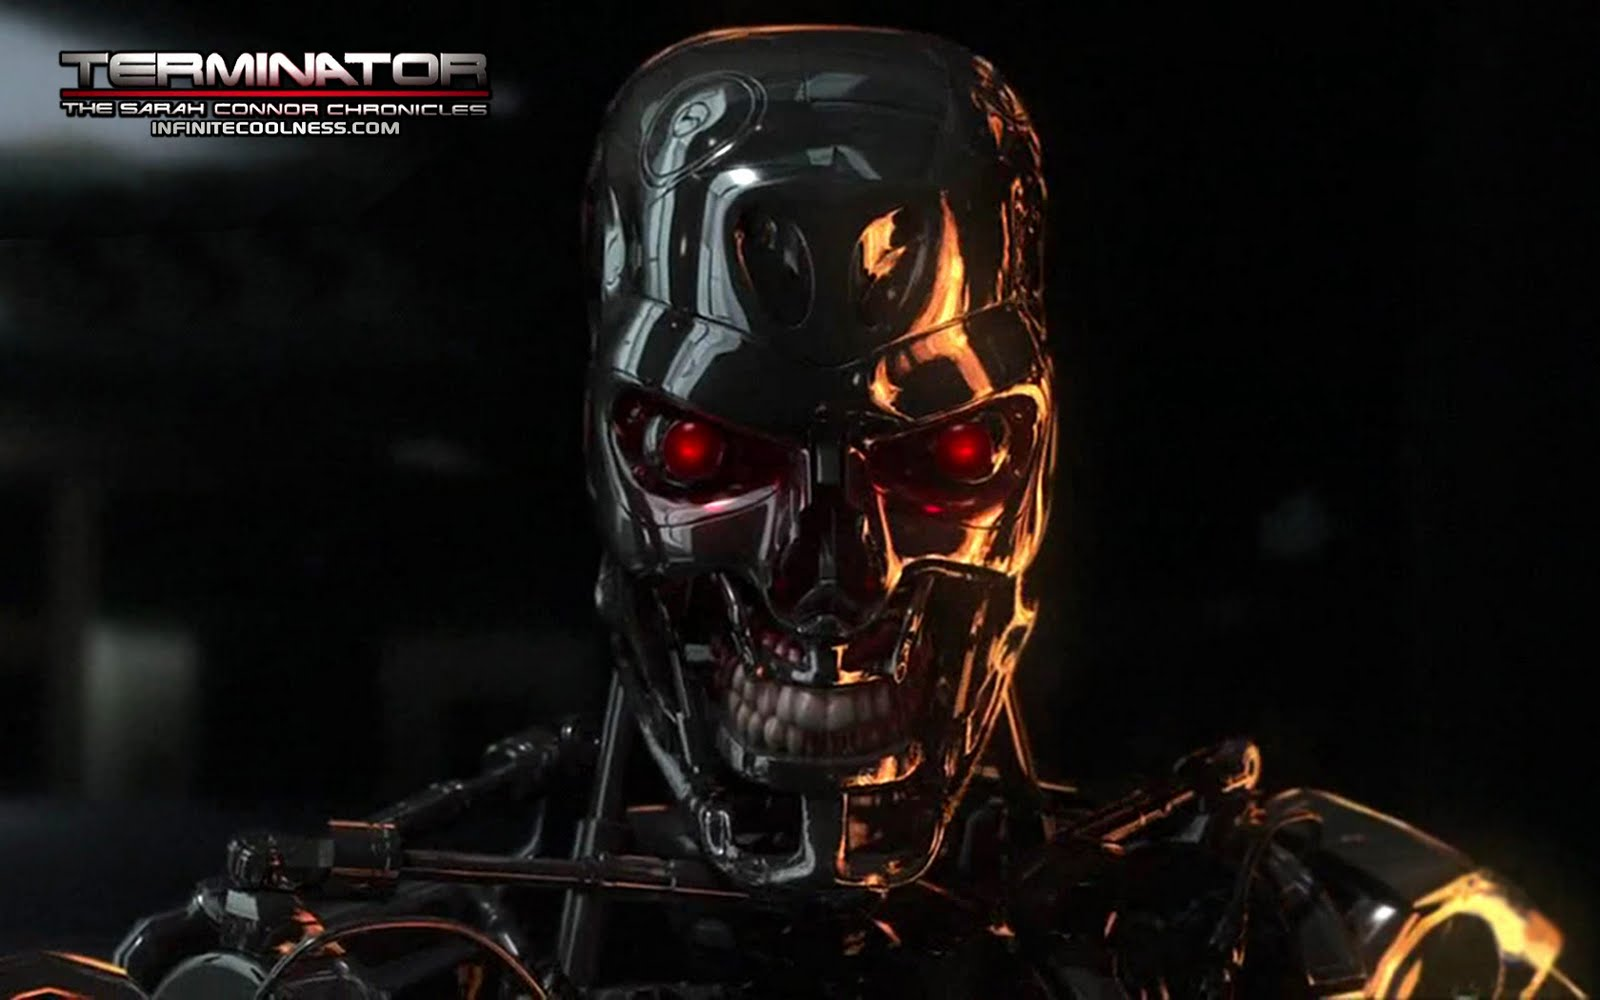 terminator sarah connor chronicle wallpaper Summer glau terminator the sarah connor chronicles hd wallpapers download summer glau terminator the sarah connor chronicles desktop & mobile backgrounds, photos in.